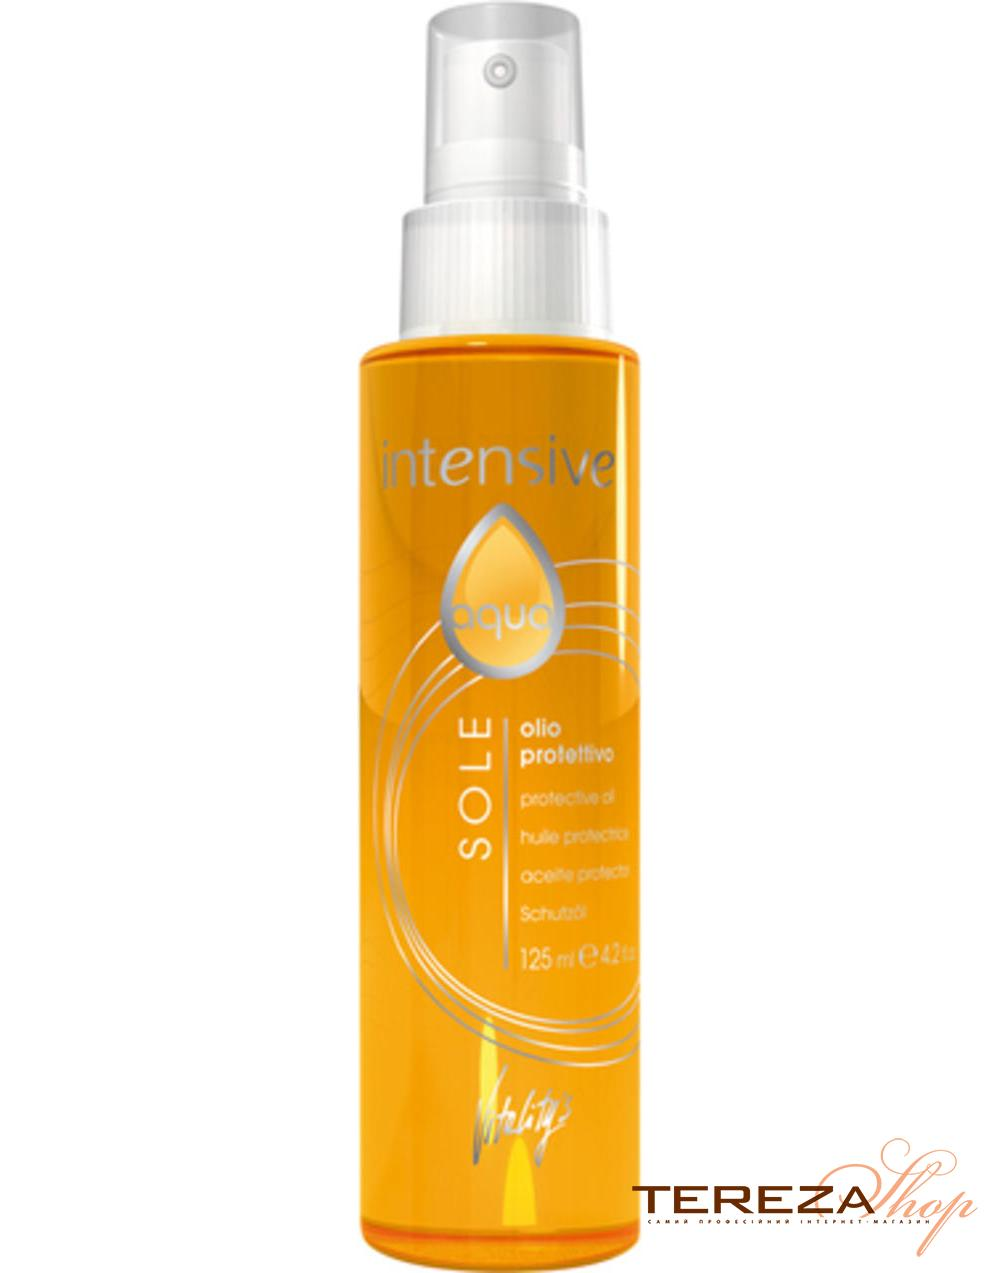 INTENSIVE AQUA SOLE OIL VITALITY'S | Tereza Shop